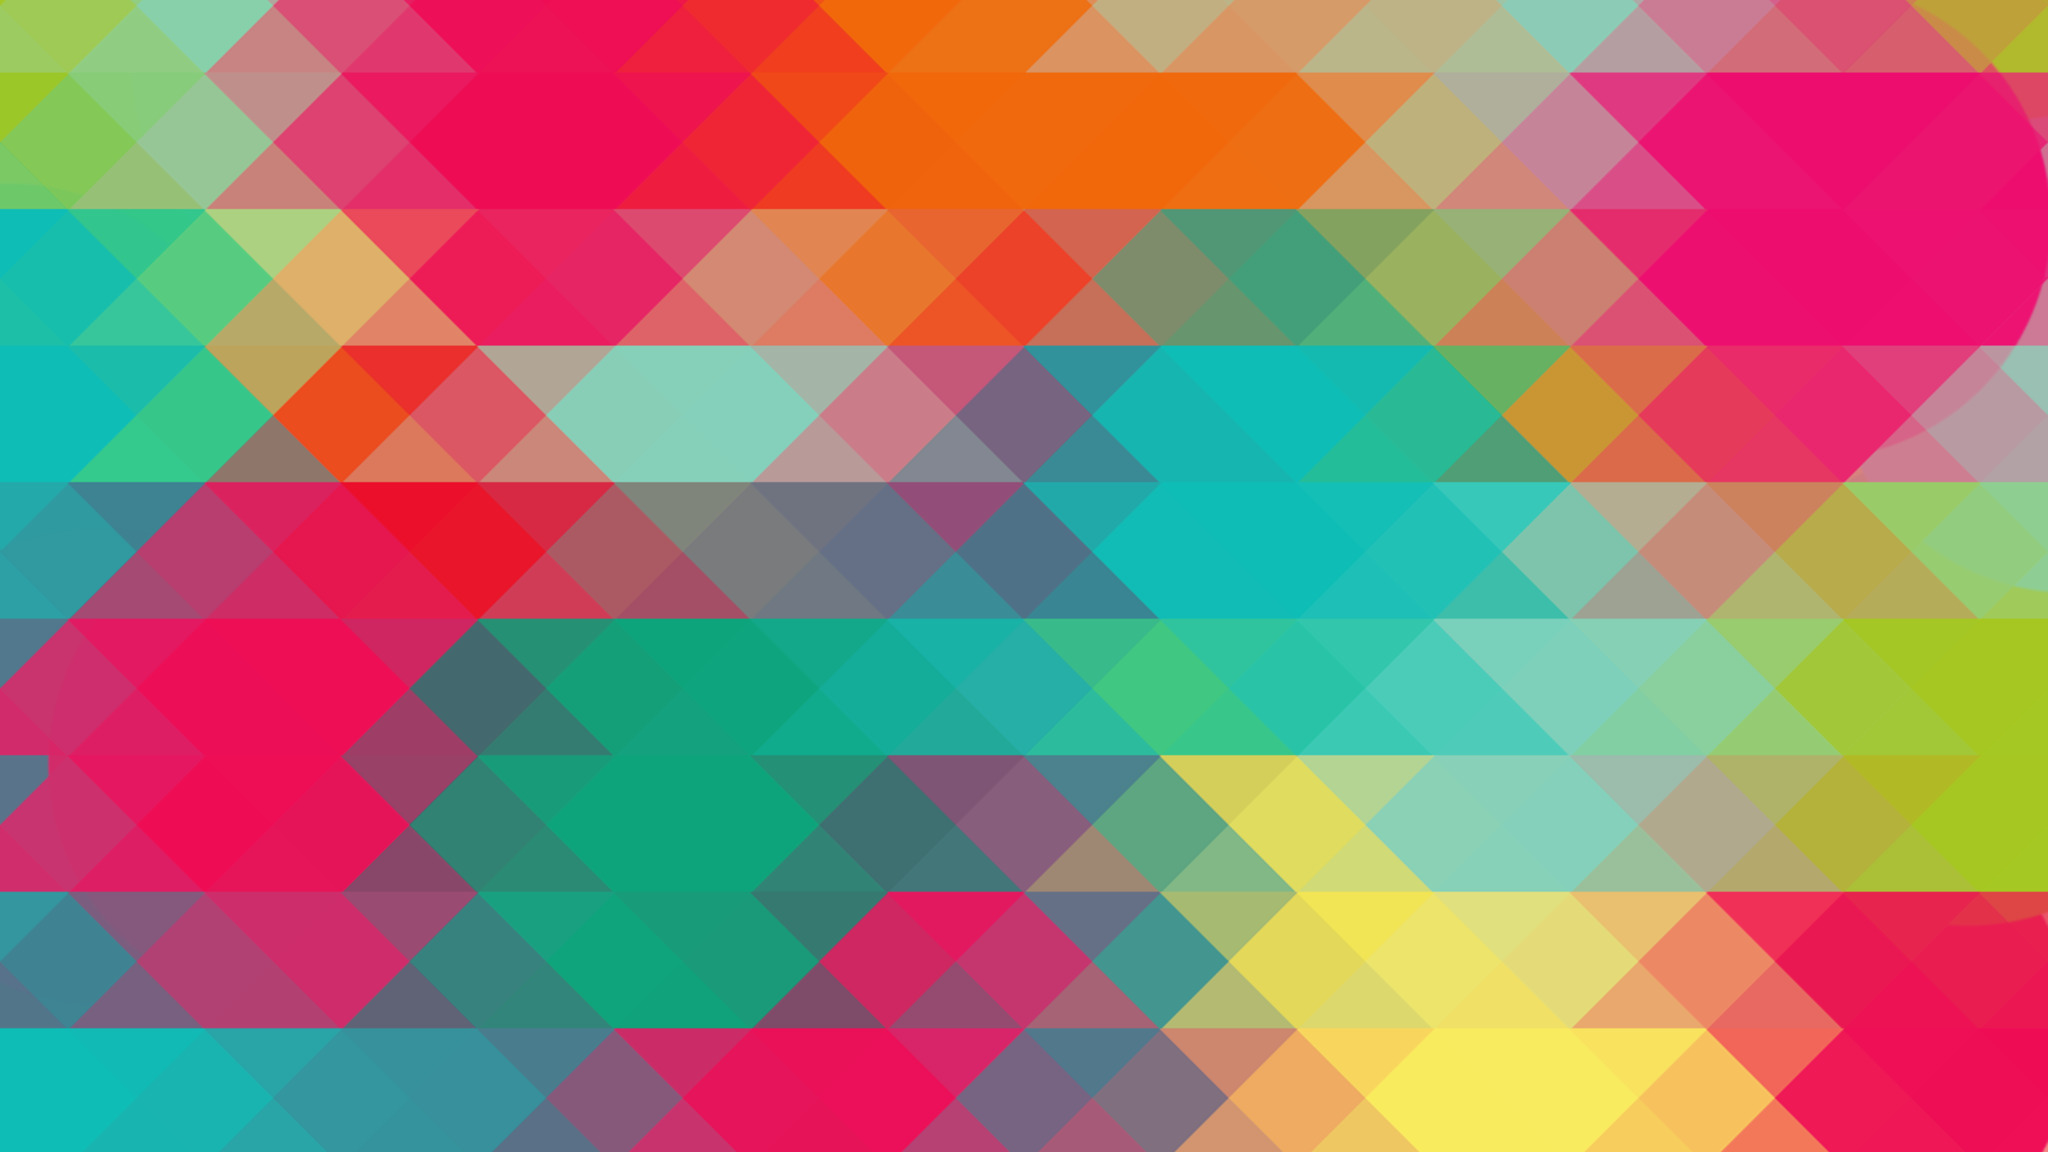 2048x1152 colors abstract 2048x1152 resolution hd 4k for Fotos 2048x1152